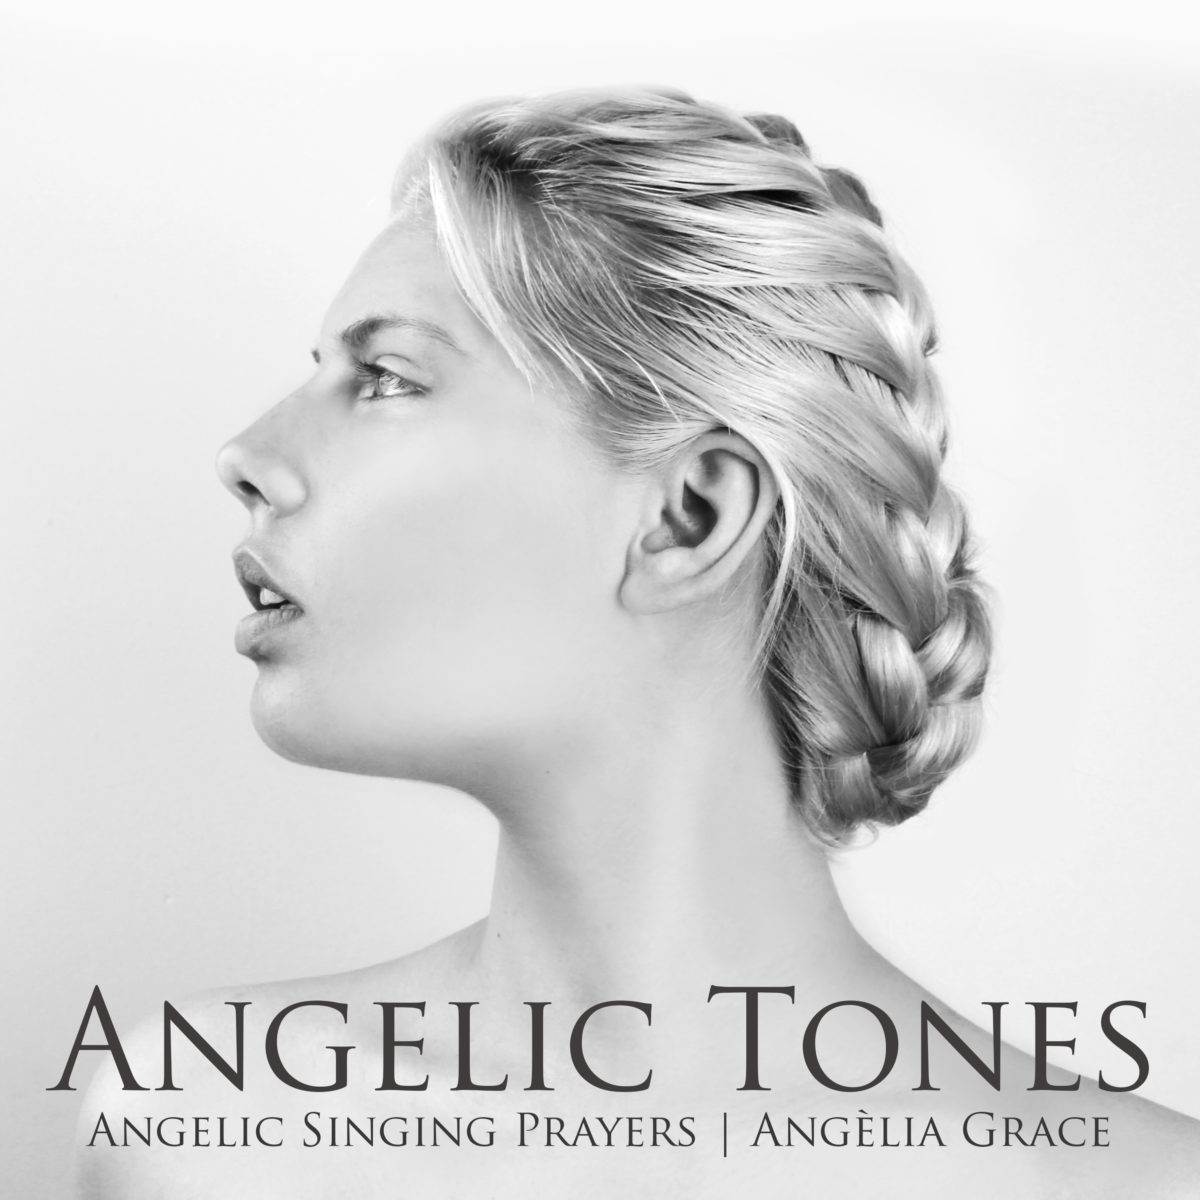 Angelic Tones (album) by Angèlia Grace